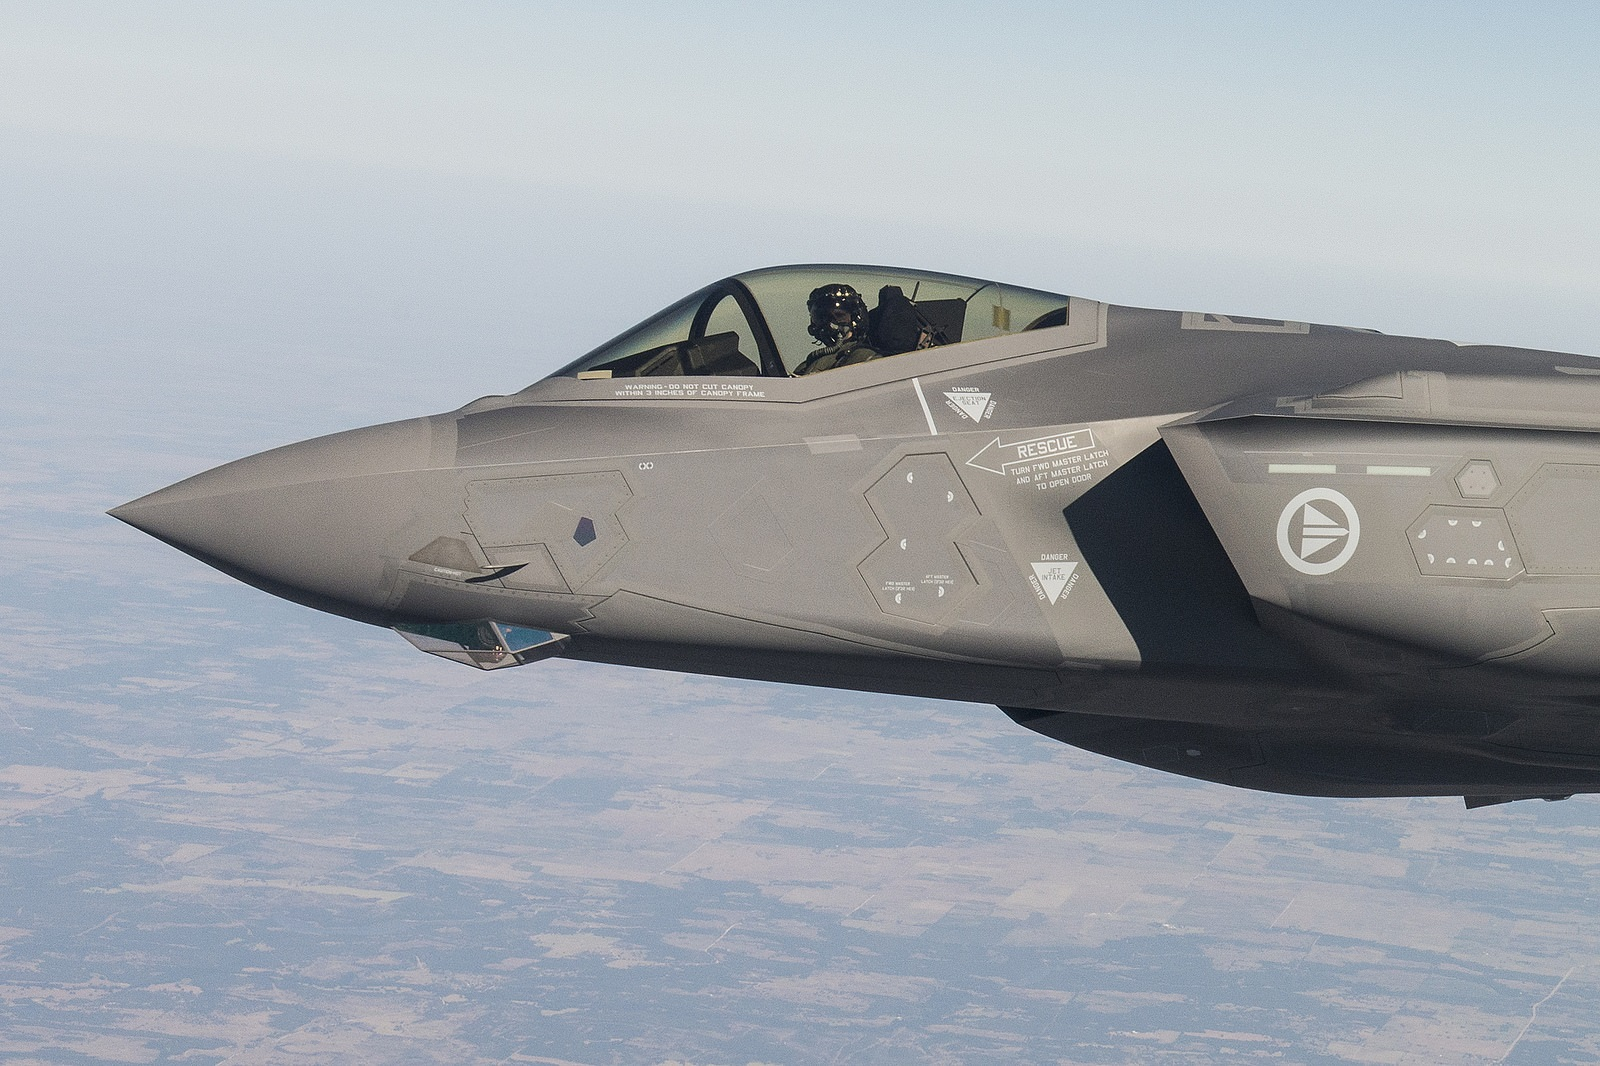 Unstoppable Stealth: Why F-22s, F-35 and New B-21 Bombers Should All Be Feared